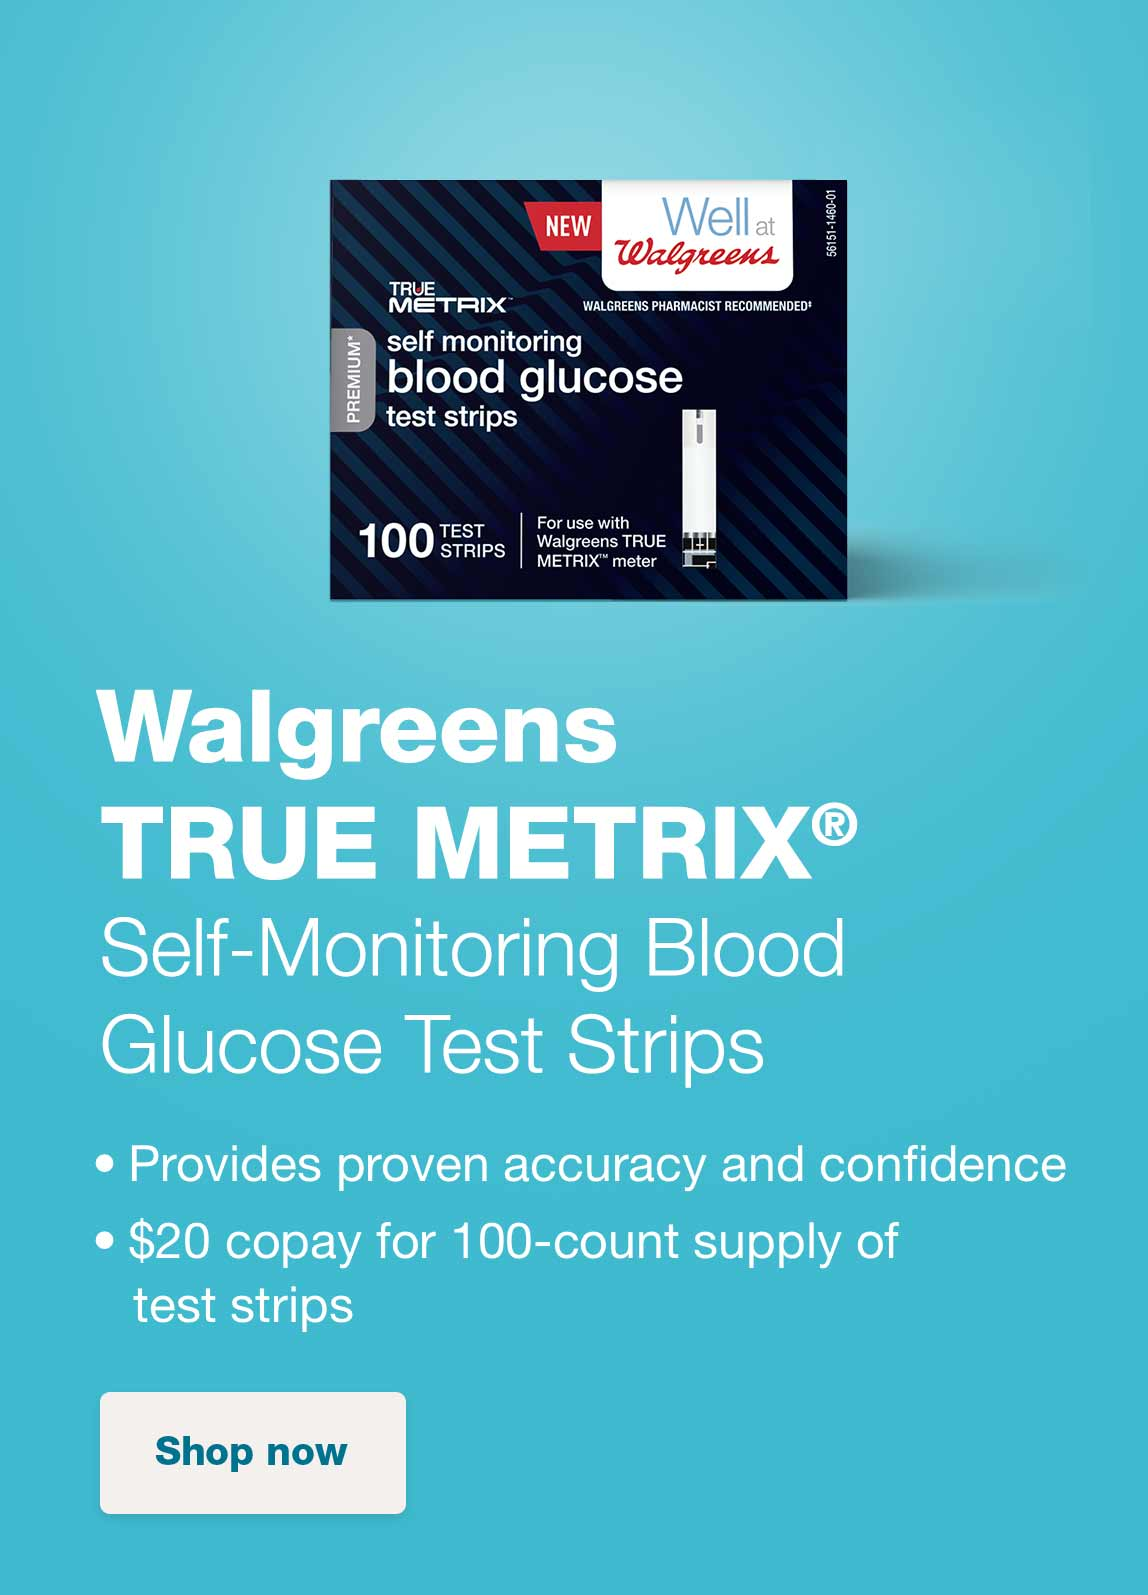 Walgreens TRUE METRIX(R) Self-Monitoring Blood Glucose Test Strips. Provides proven accuracy and confidence. $20 copay for 100-count supply of test strips. Shop now.